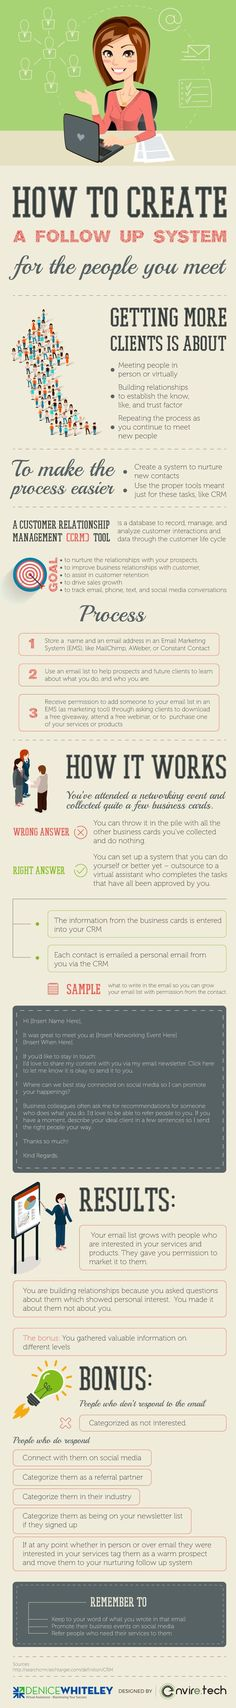 Tips on turning the people you meet into business clients #infographic #Business #CRM #Marketing #EmailMarketing http://itz-my.com